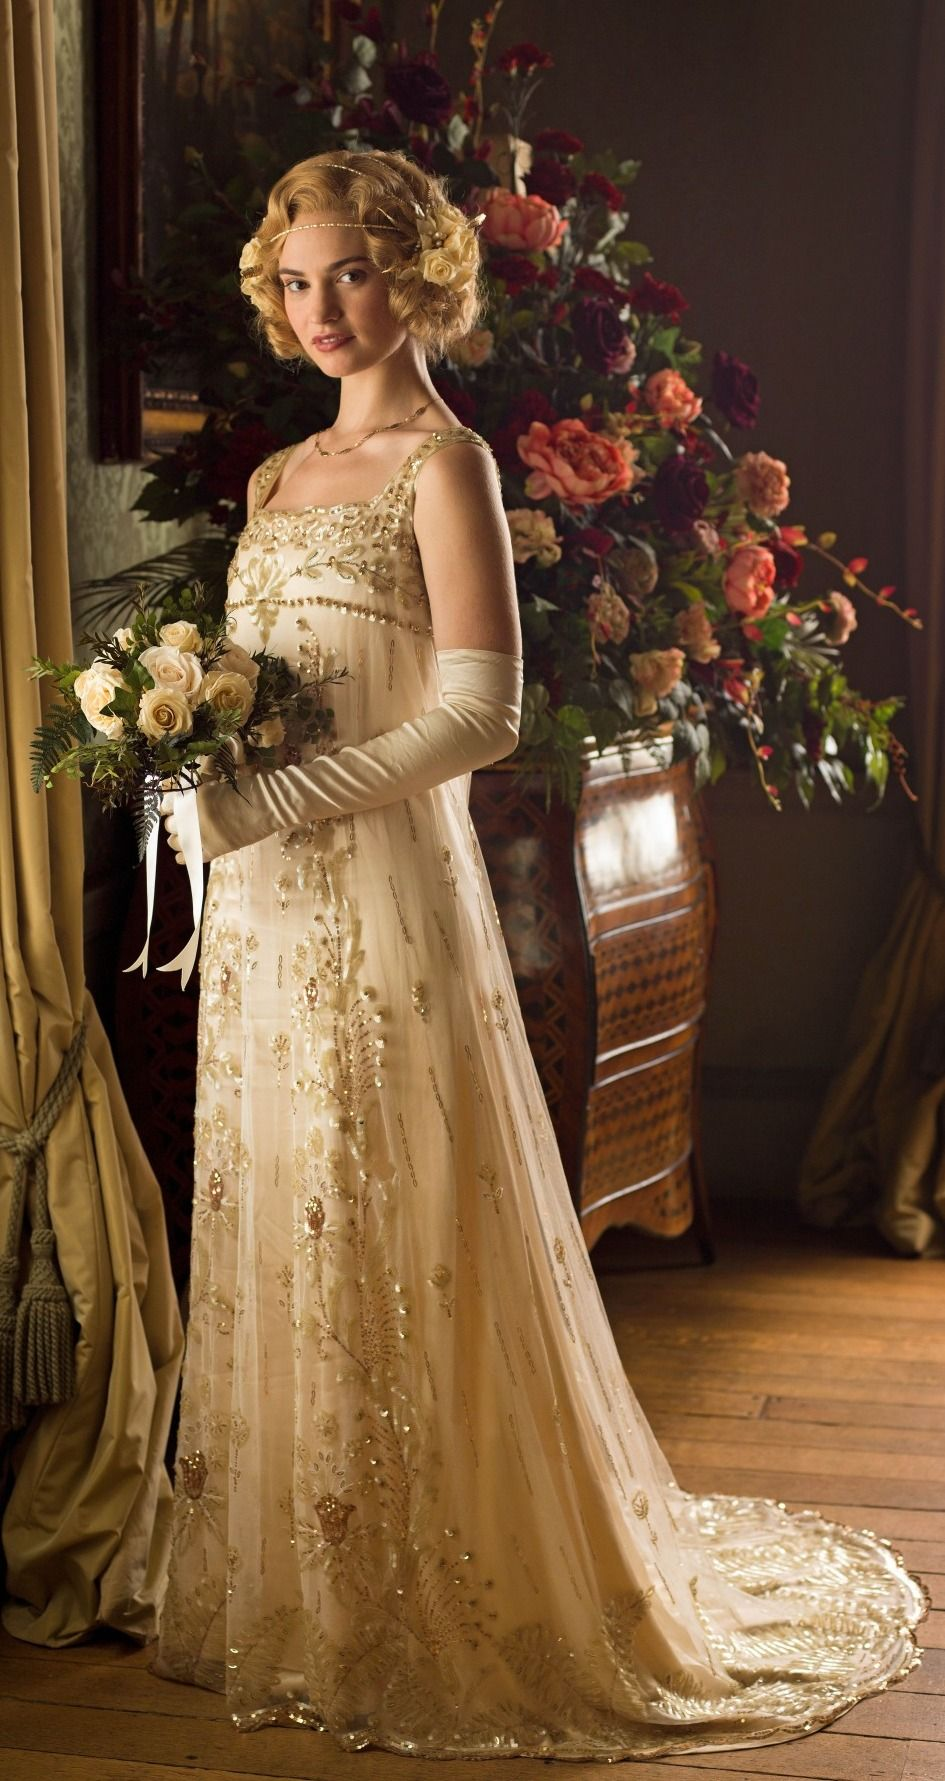 Lady Rose\'s Wedding | Downton Abbey (Series 5) | Lady Rose\'s ...